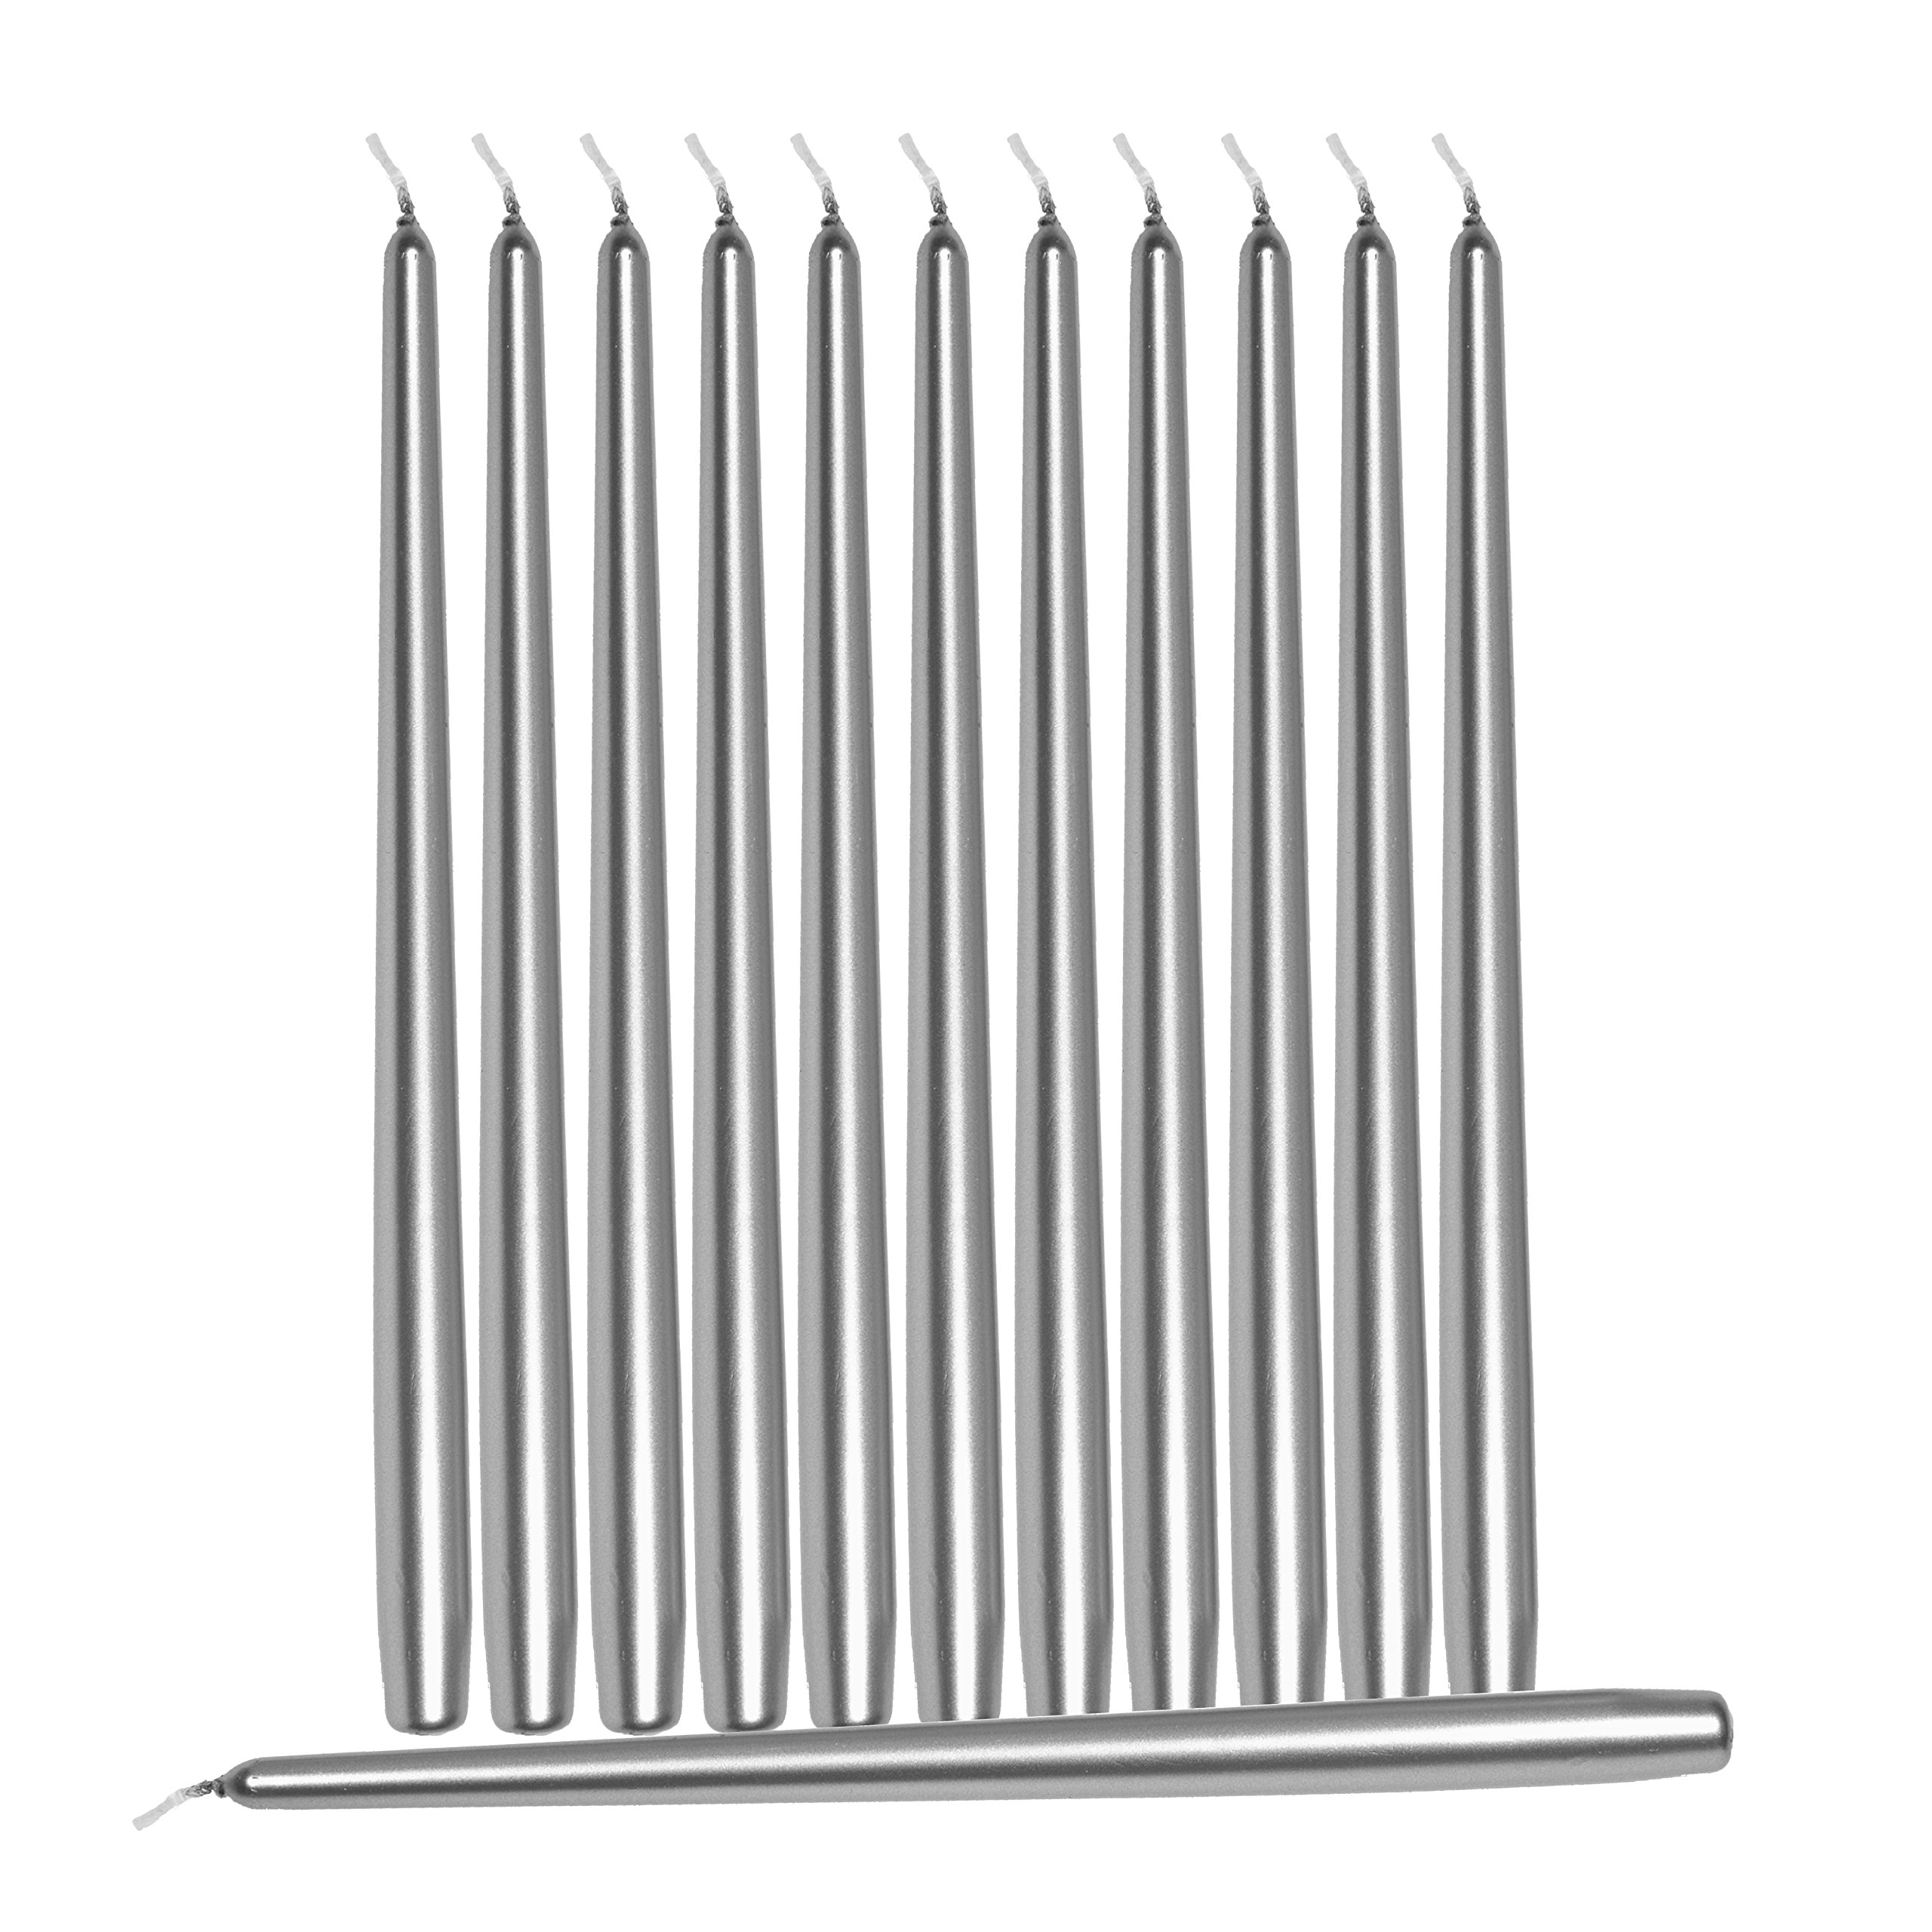 Hyoola 12 Pack Tall Metallic Taper Candles - 10 Inch Silver Metallic, Dripless, Unscented Dinner Candle - Paraffin Wax with Cotton Wicks by Hyoola